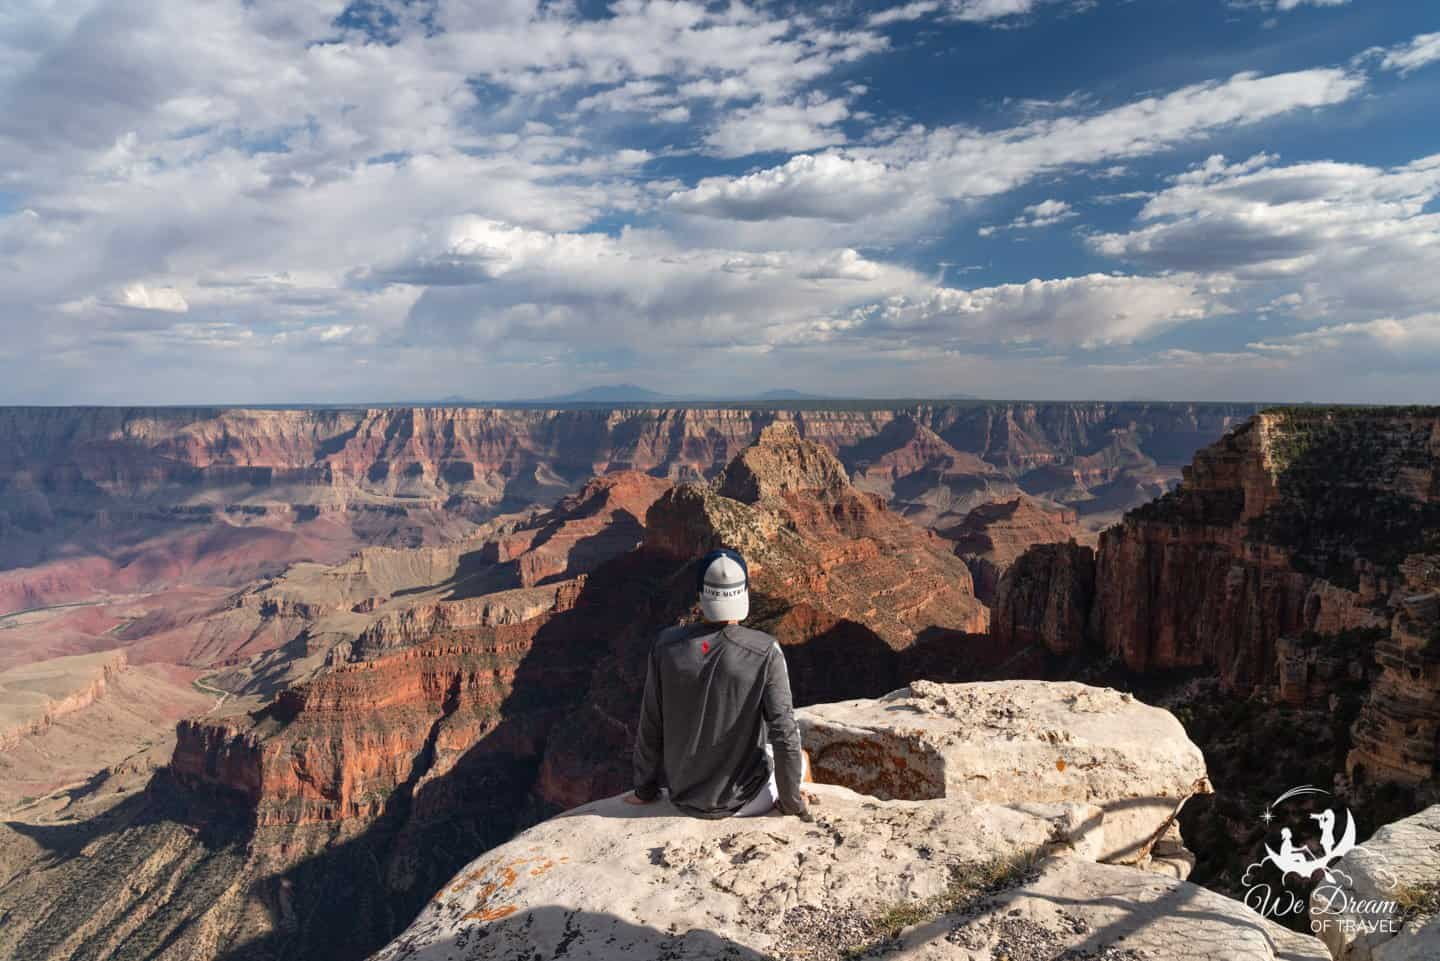 Staring out over the Grand Canyon landscape from Walhalla Overlook.